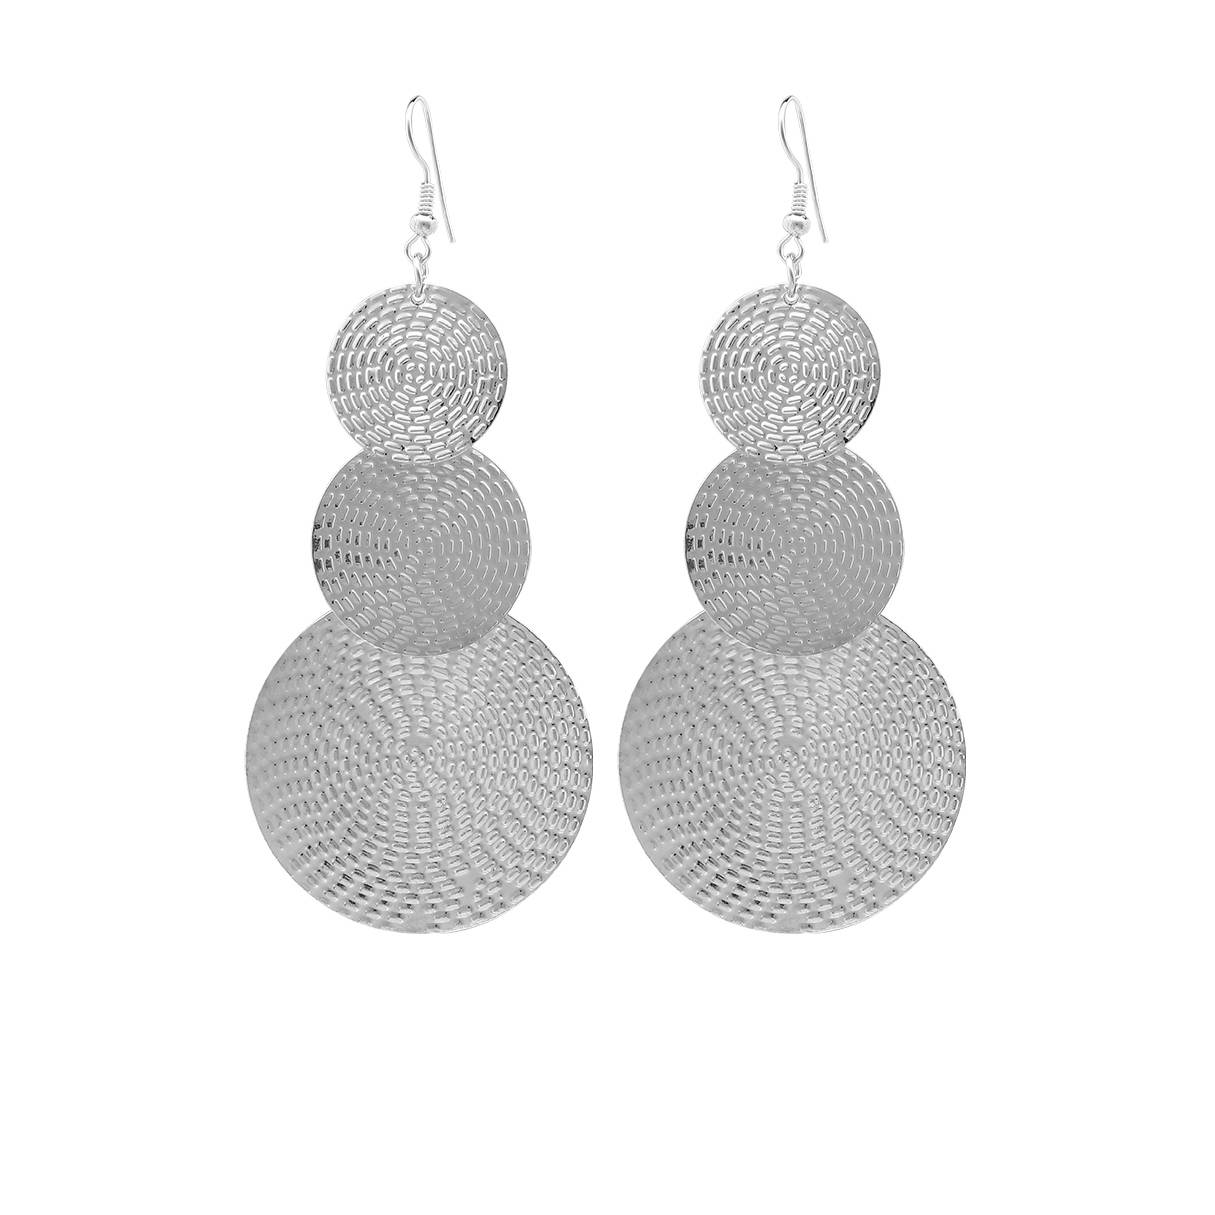 Yoins Silver Exaggerated Discs Metal Earrings  - women - Silver - Size: One Size